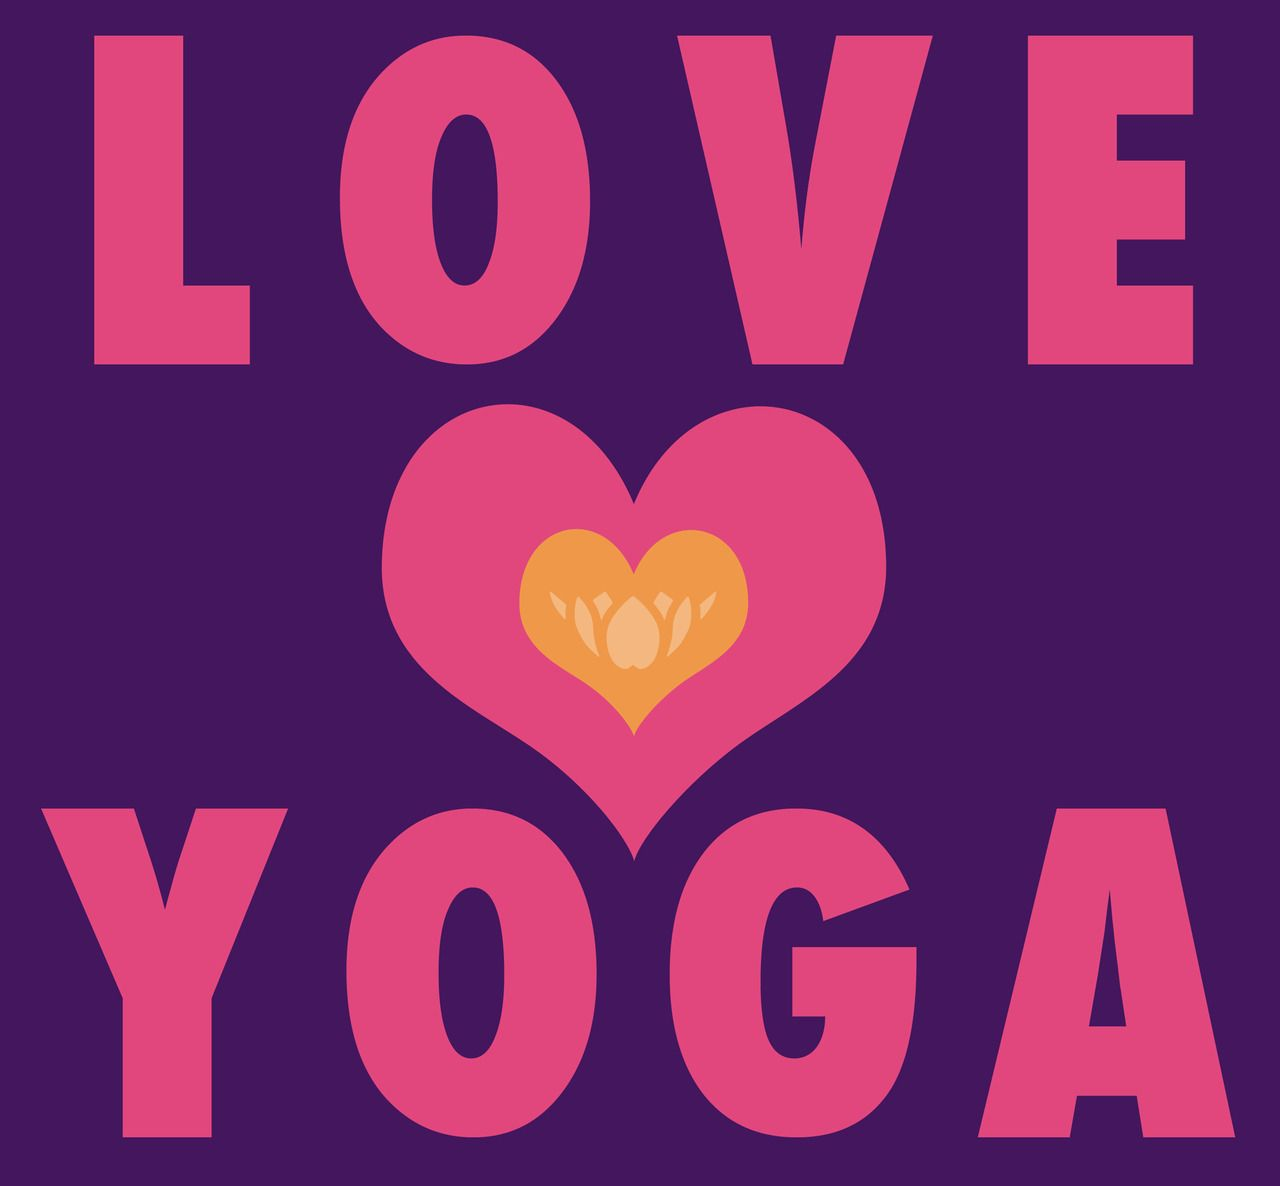 Love yoga. Loved and pinned by www.downdogboutique.com